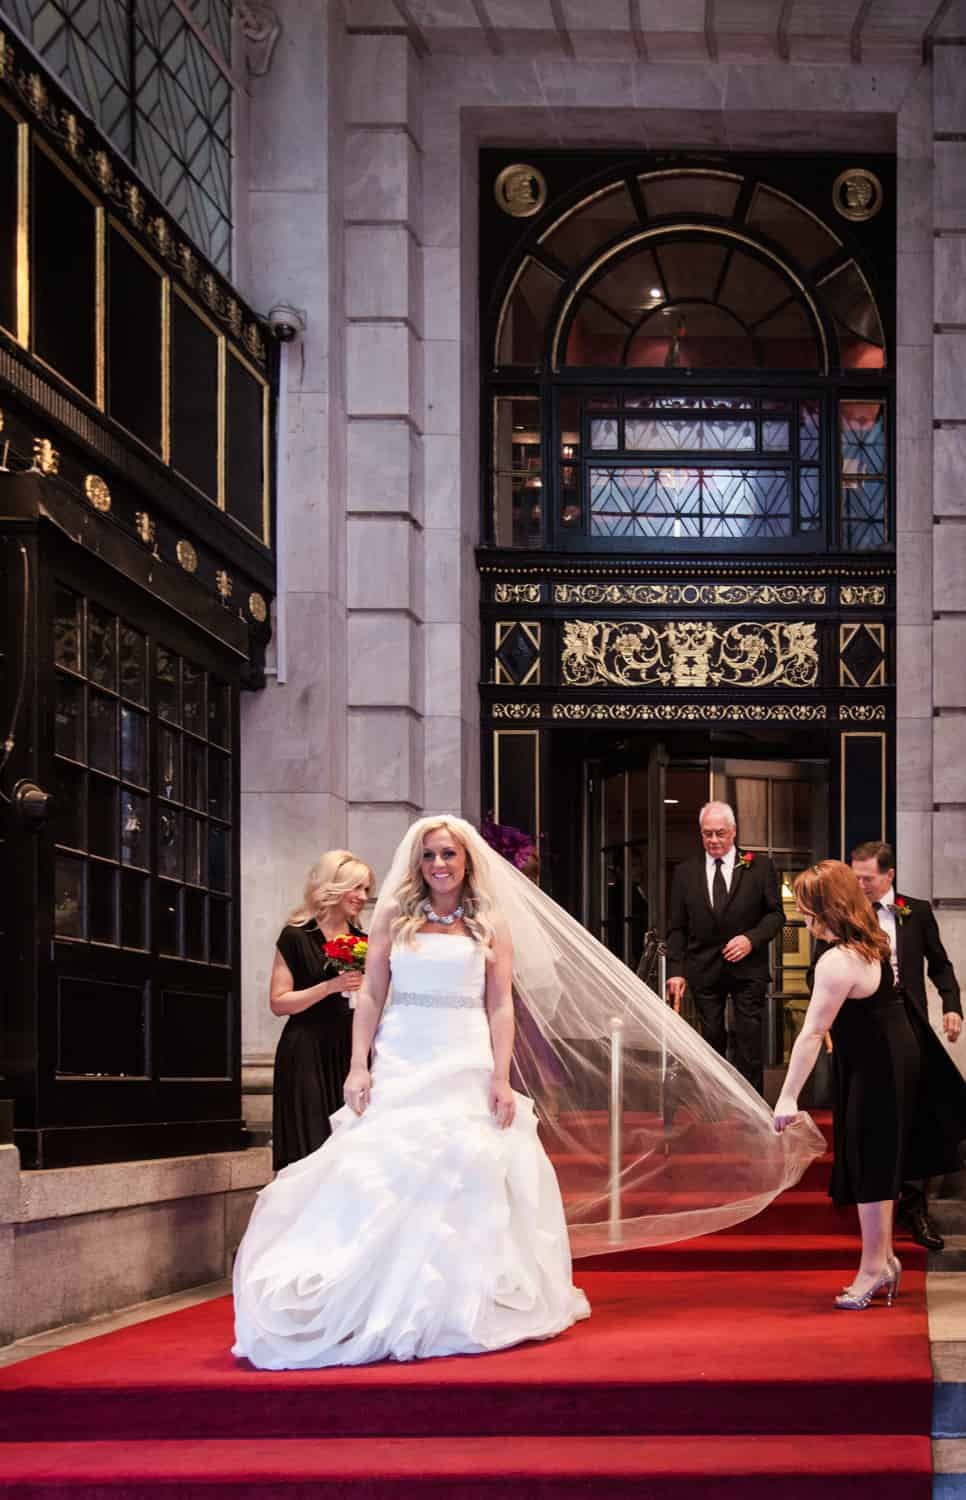 Bride walking down stairs of Plaza Hotel before wedding